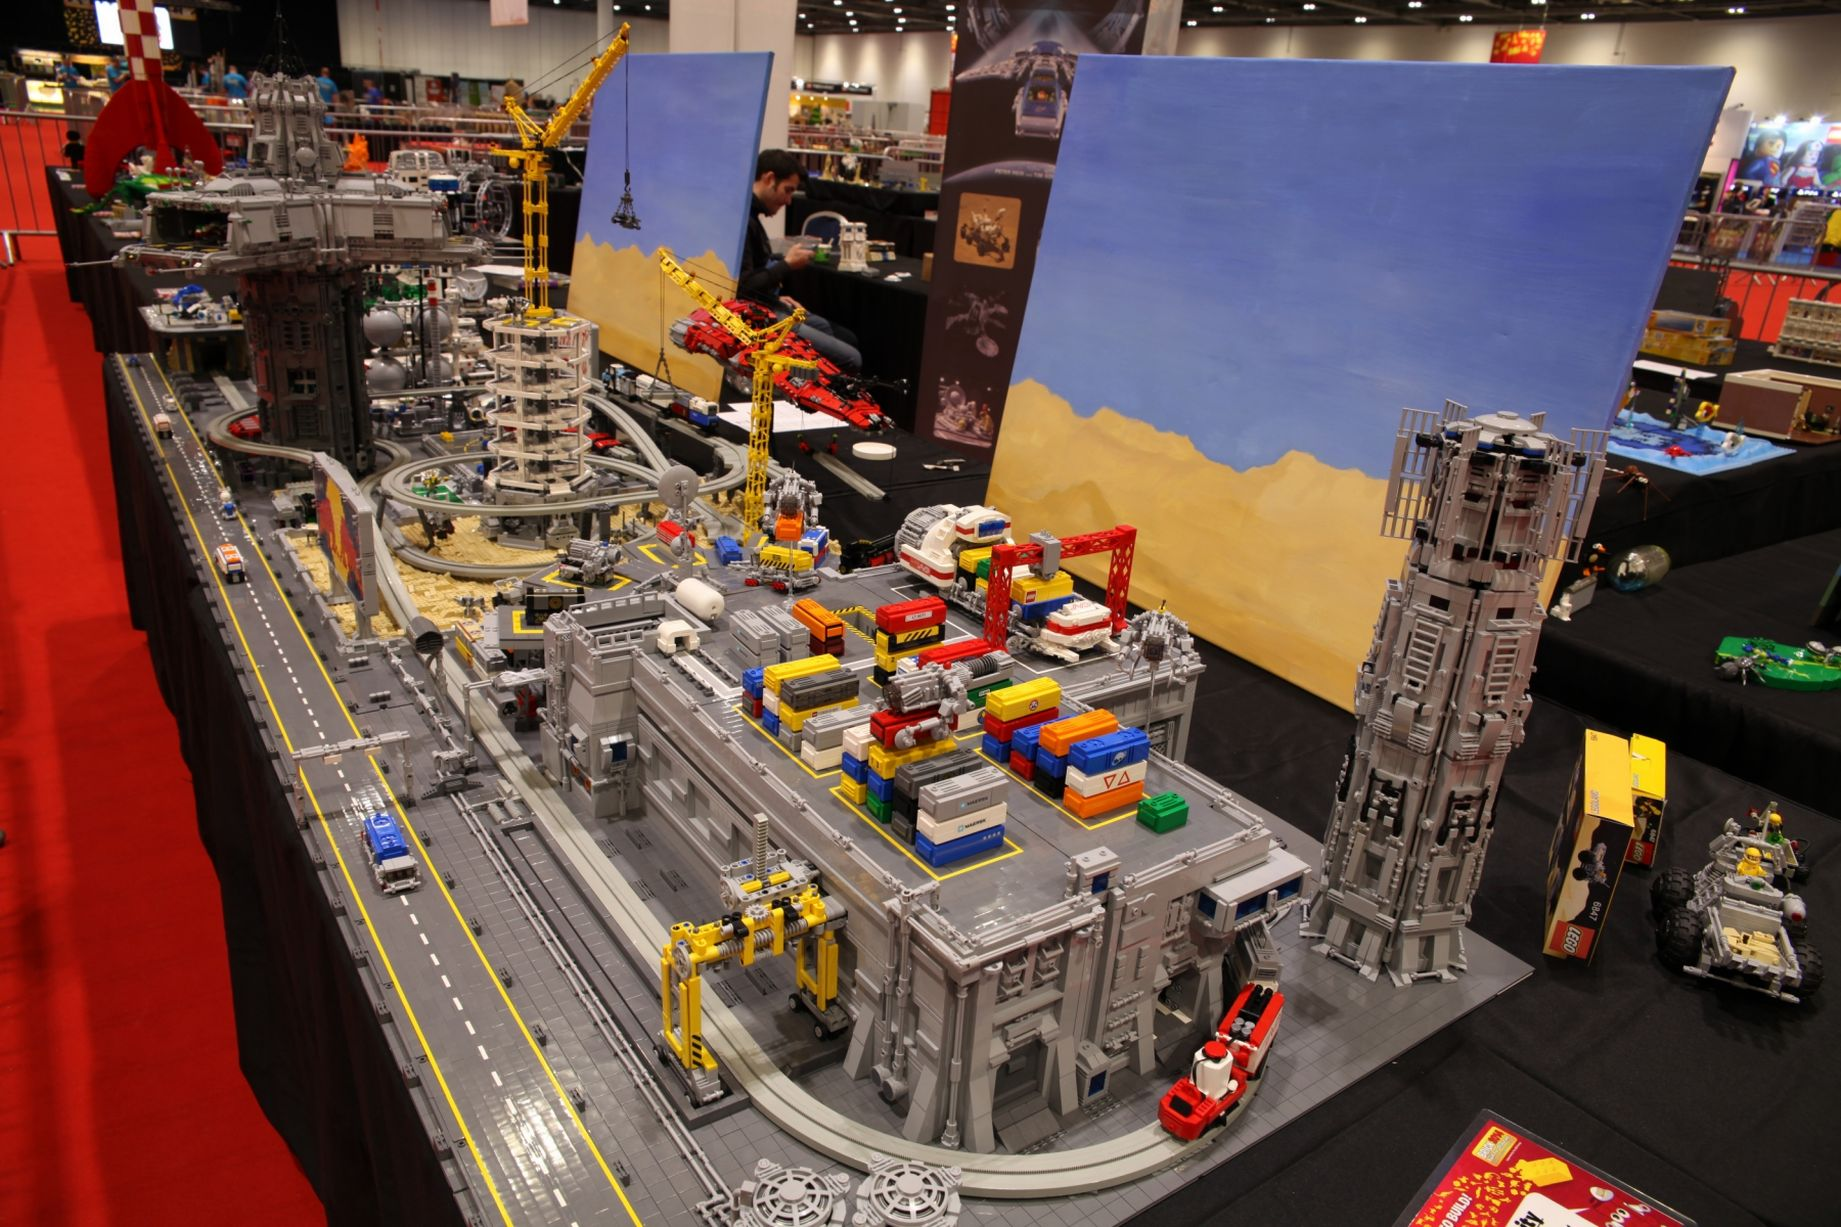 BRICK lego show coming to Birmingham NEC   Birmingham Live BRICK 2015   Built for LEGO fans event coming to Birmingham NEC in October   LEGO